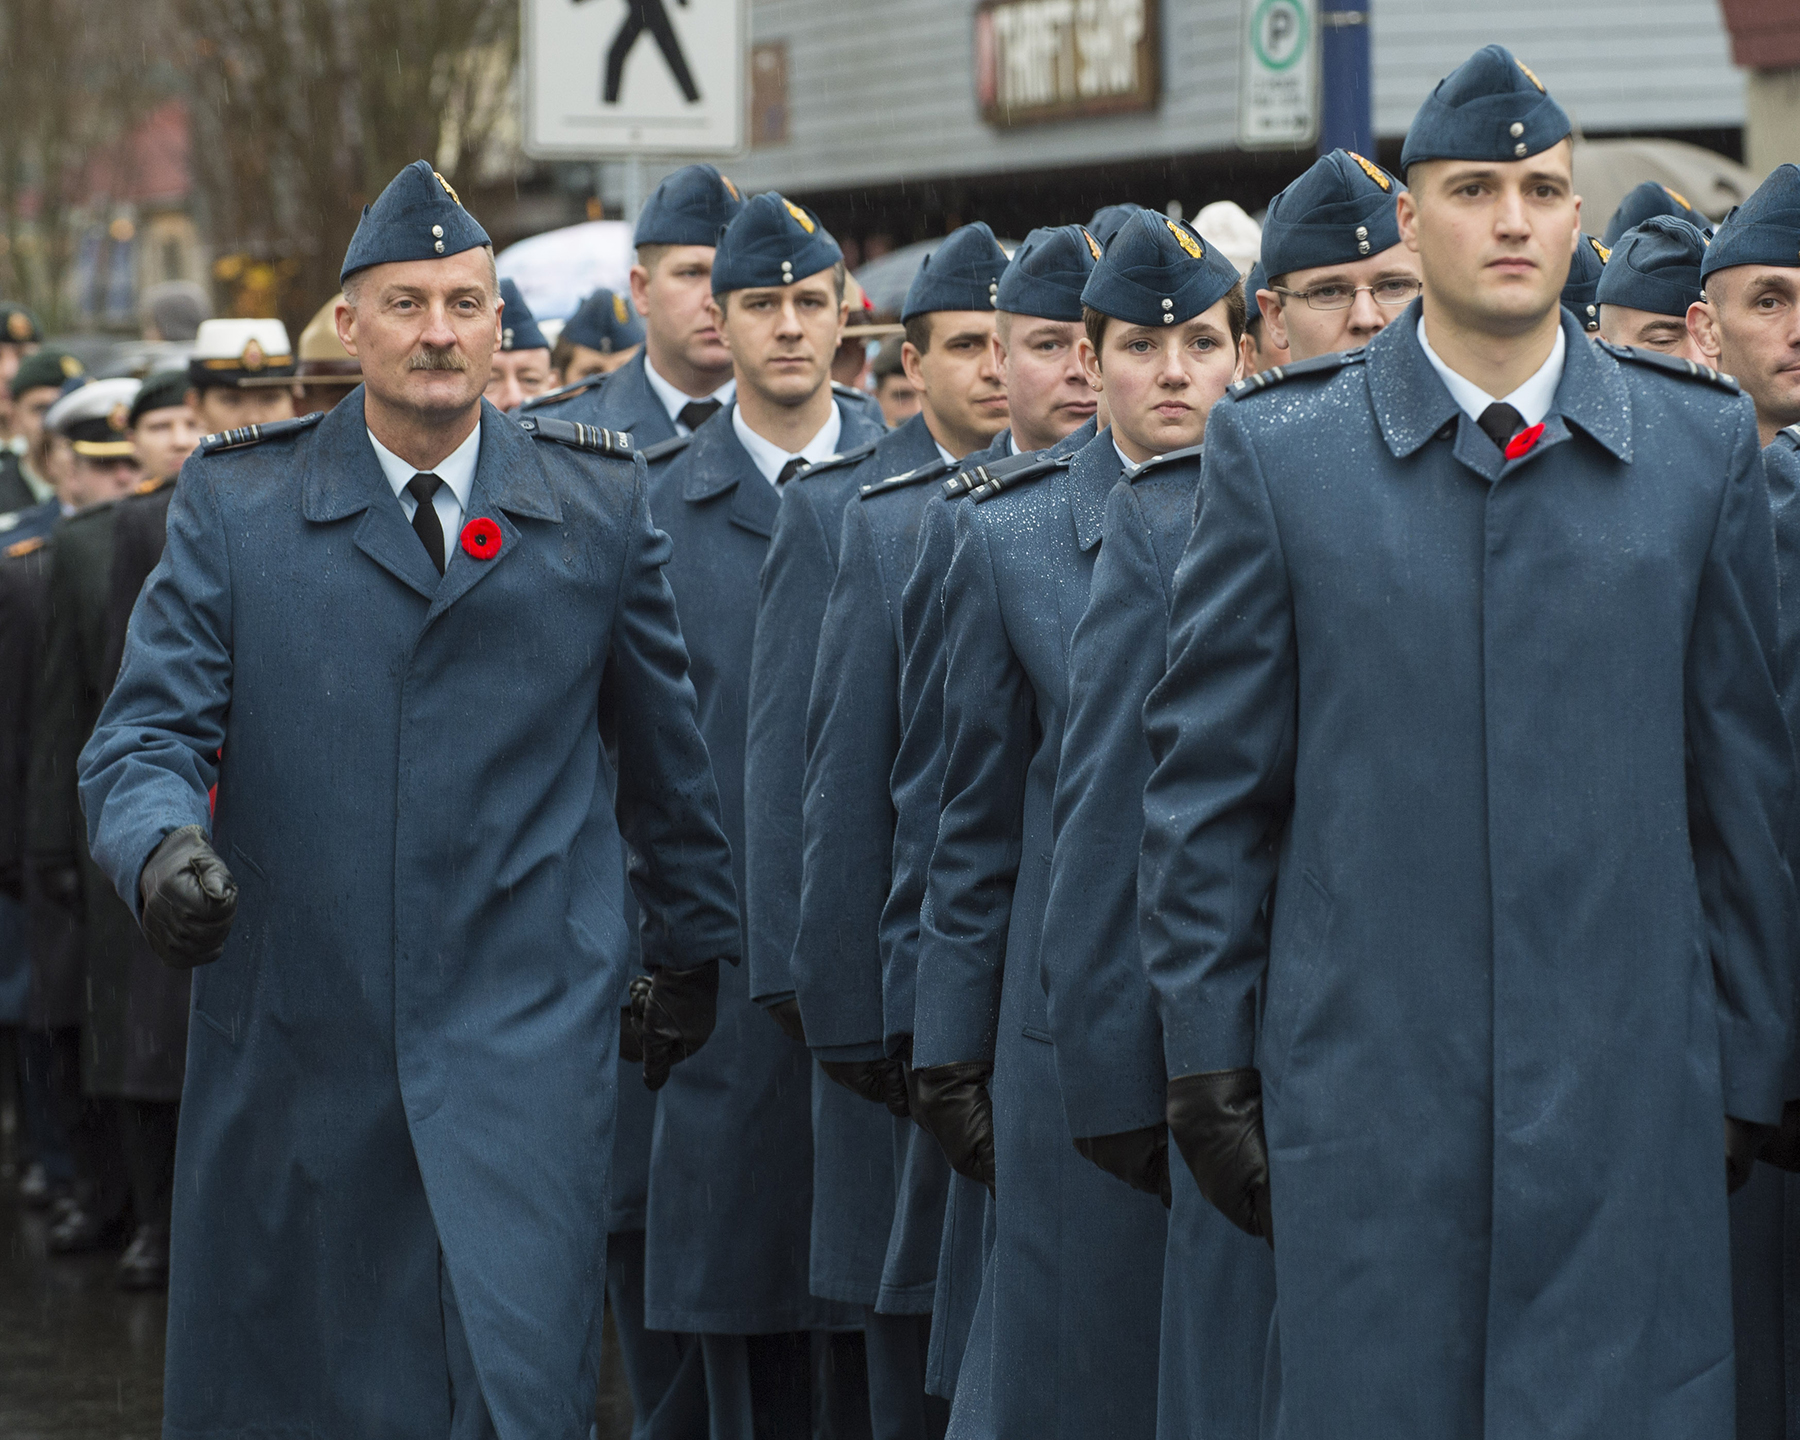 Members of 19 Wing Comox's 442 Transport and Rescue Squadron prepare to march past the reviewing stand during the November 11, 2016, Remembrance Day ceremony held in Comox, British Columbia. PHOTO: Master Seaman Roxanne Wood